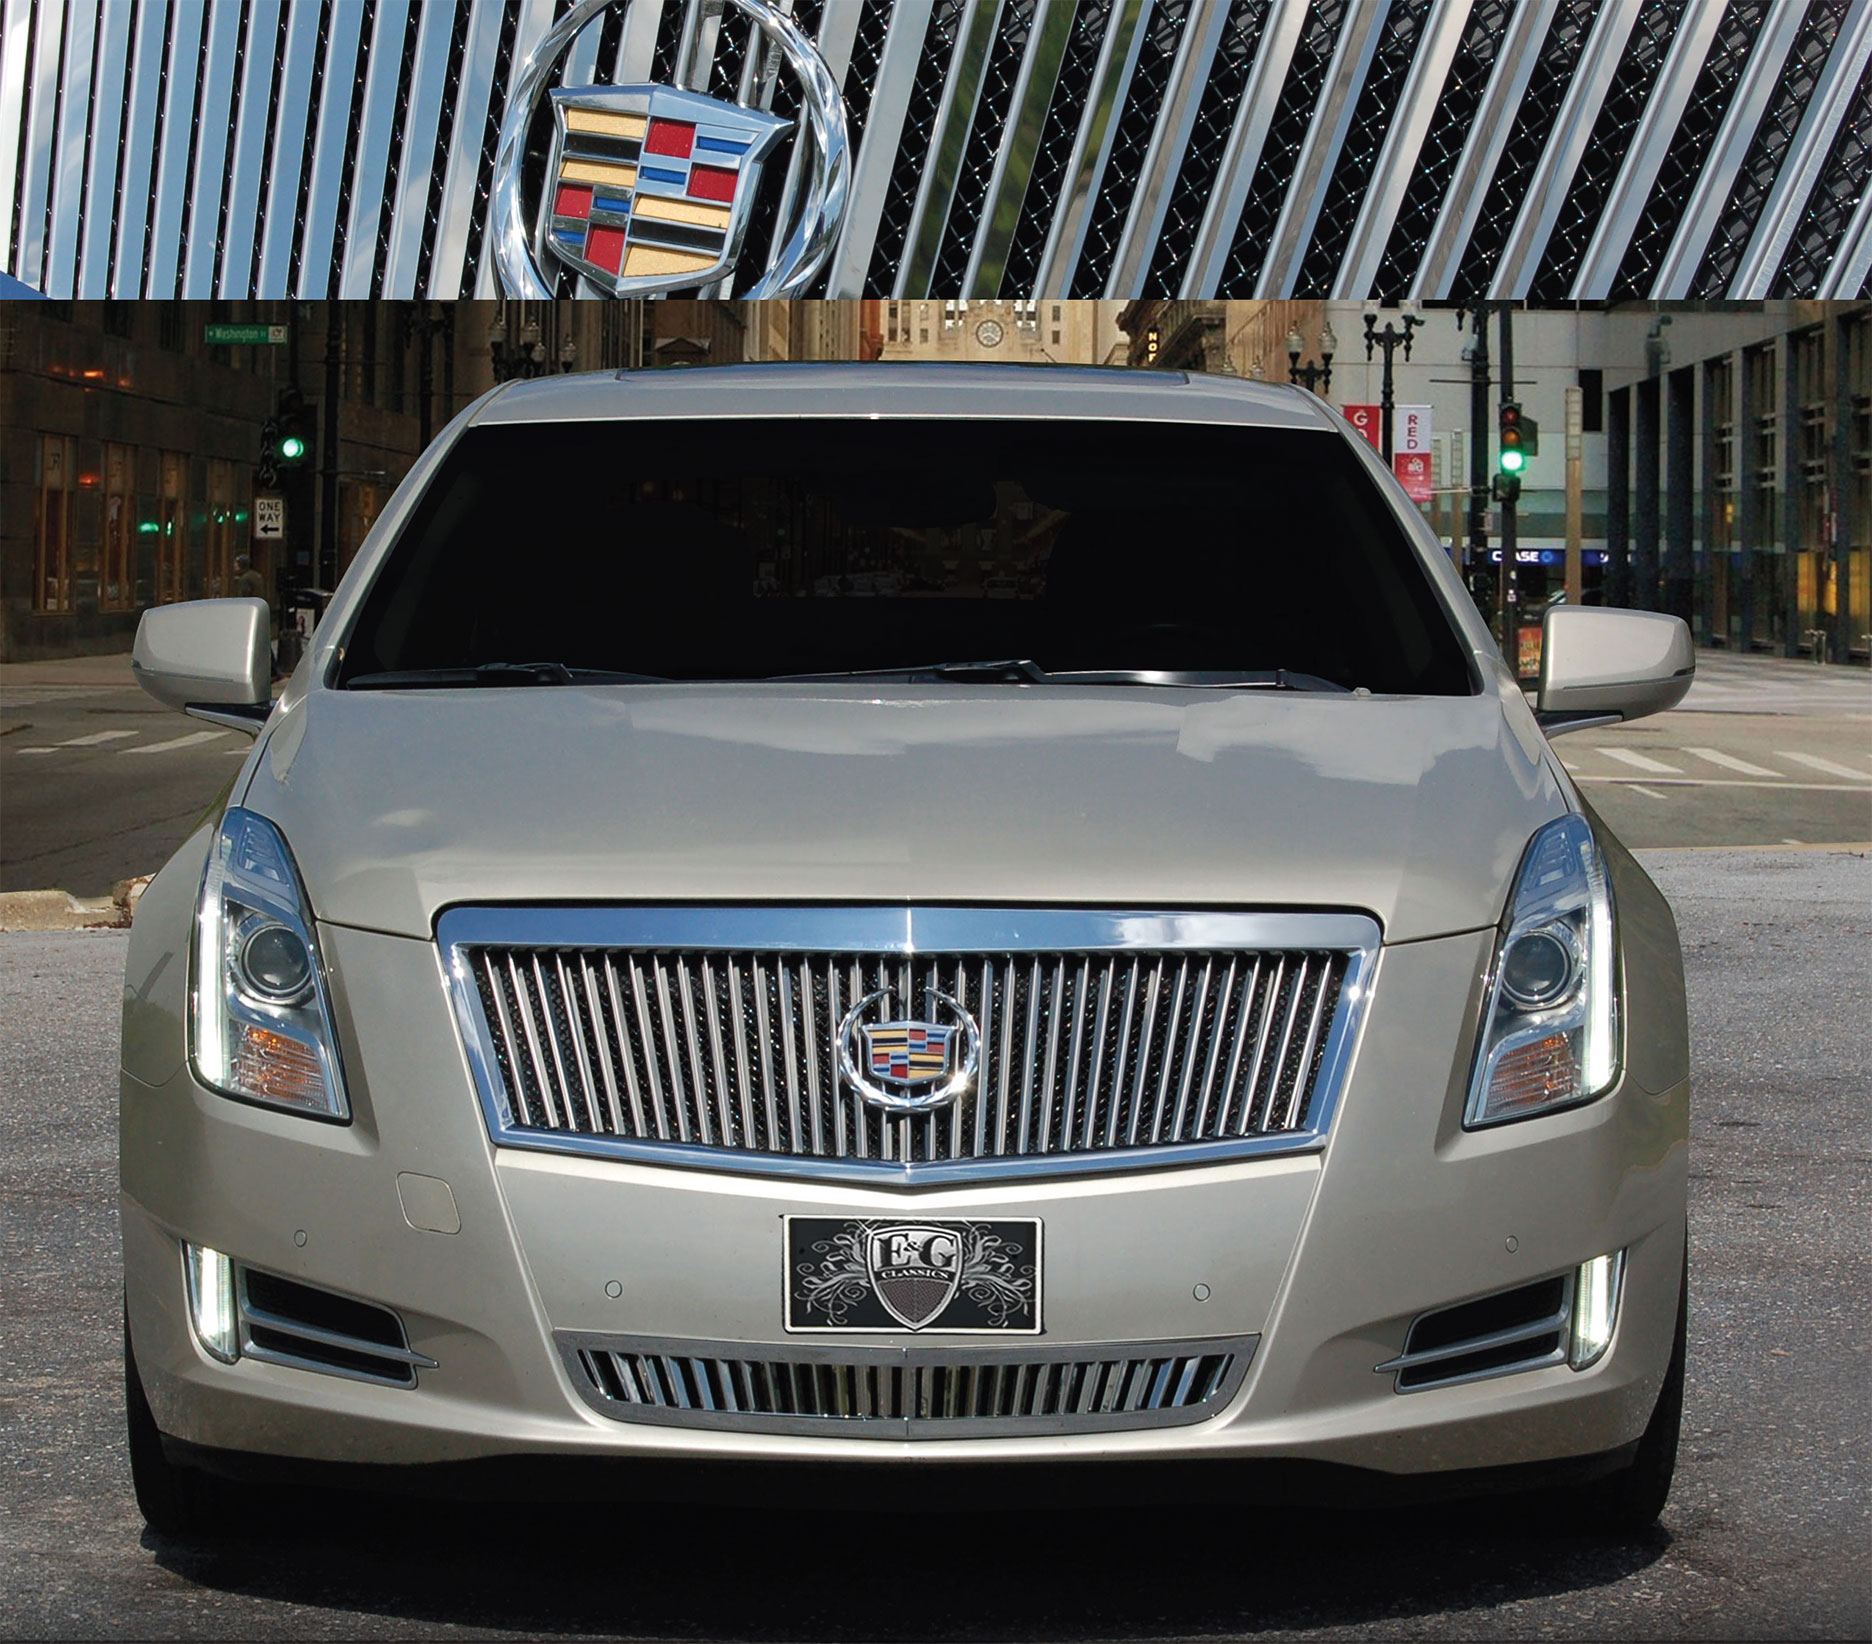 Cadillac 2013 Price: E&G Classics Cadillac XTS Grille Wing Body Kit